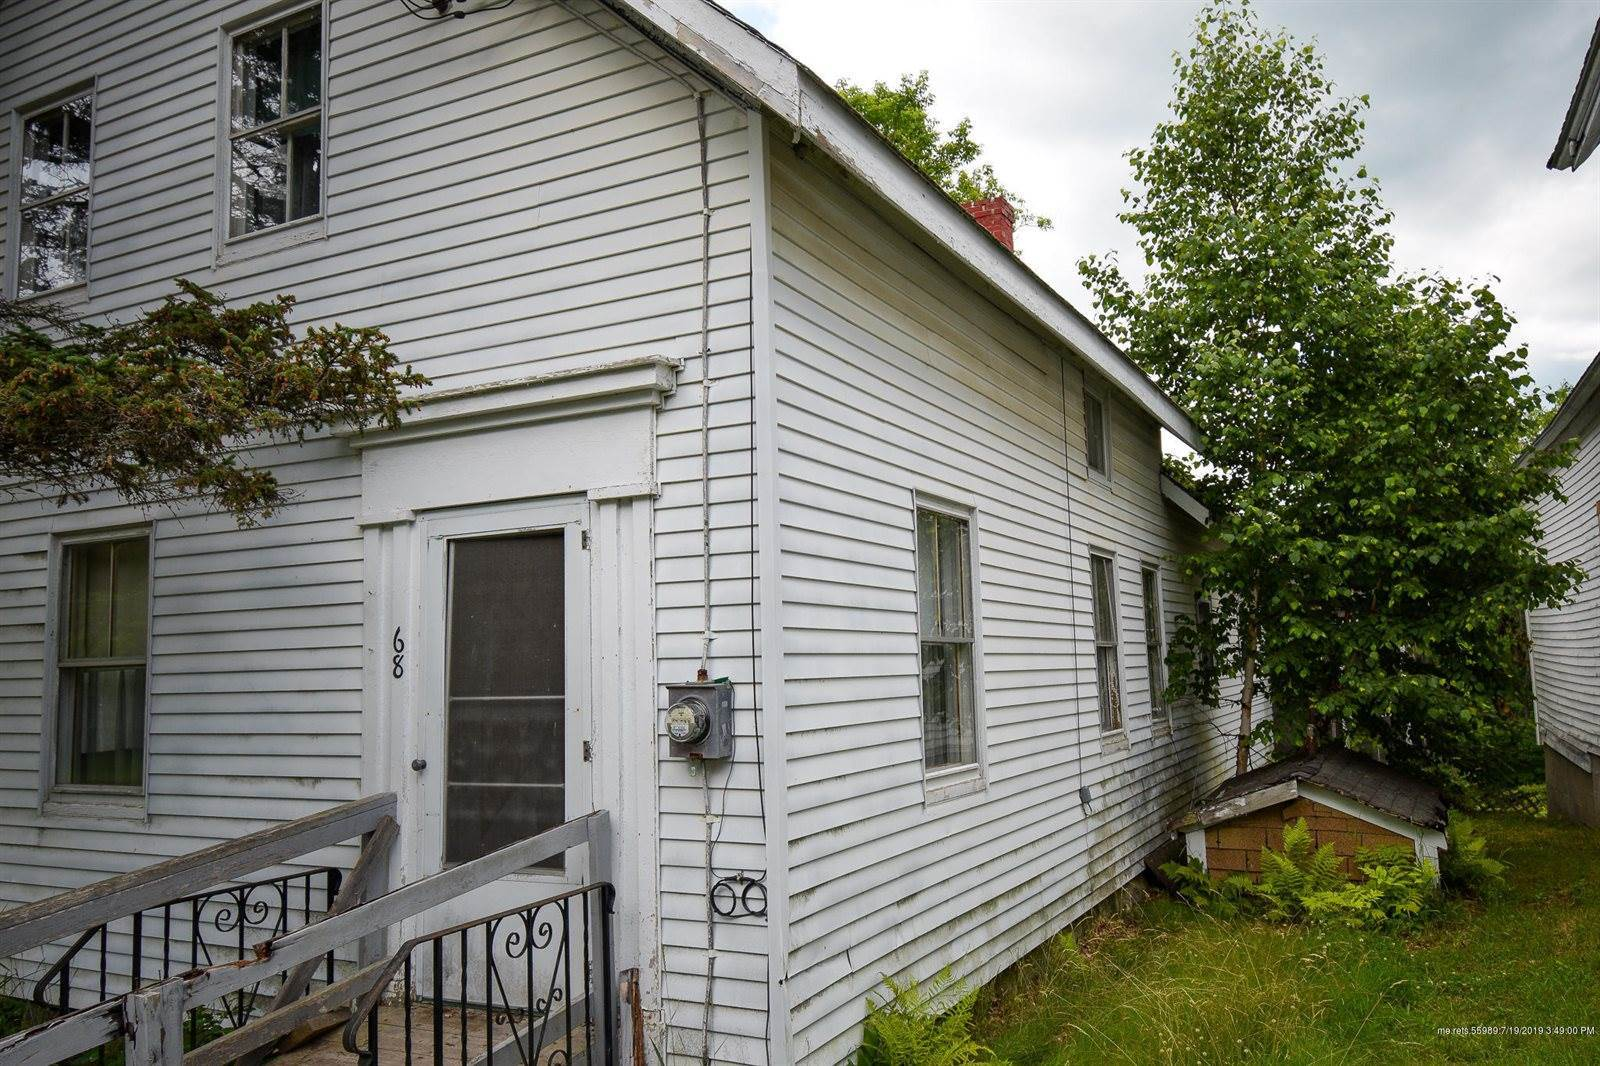 68 Church Street, Brownville, ME 04414